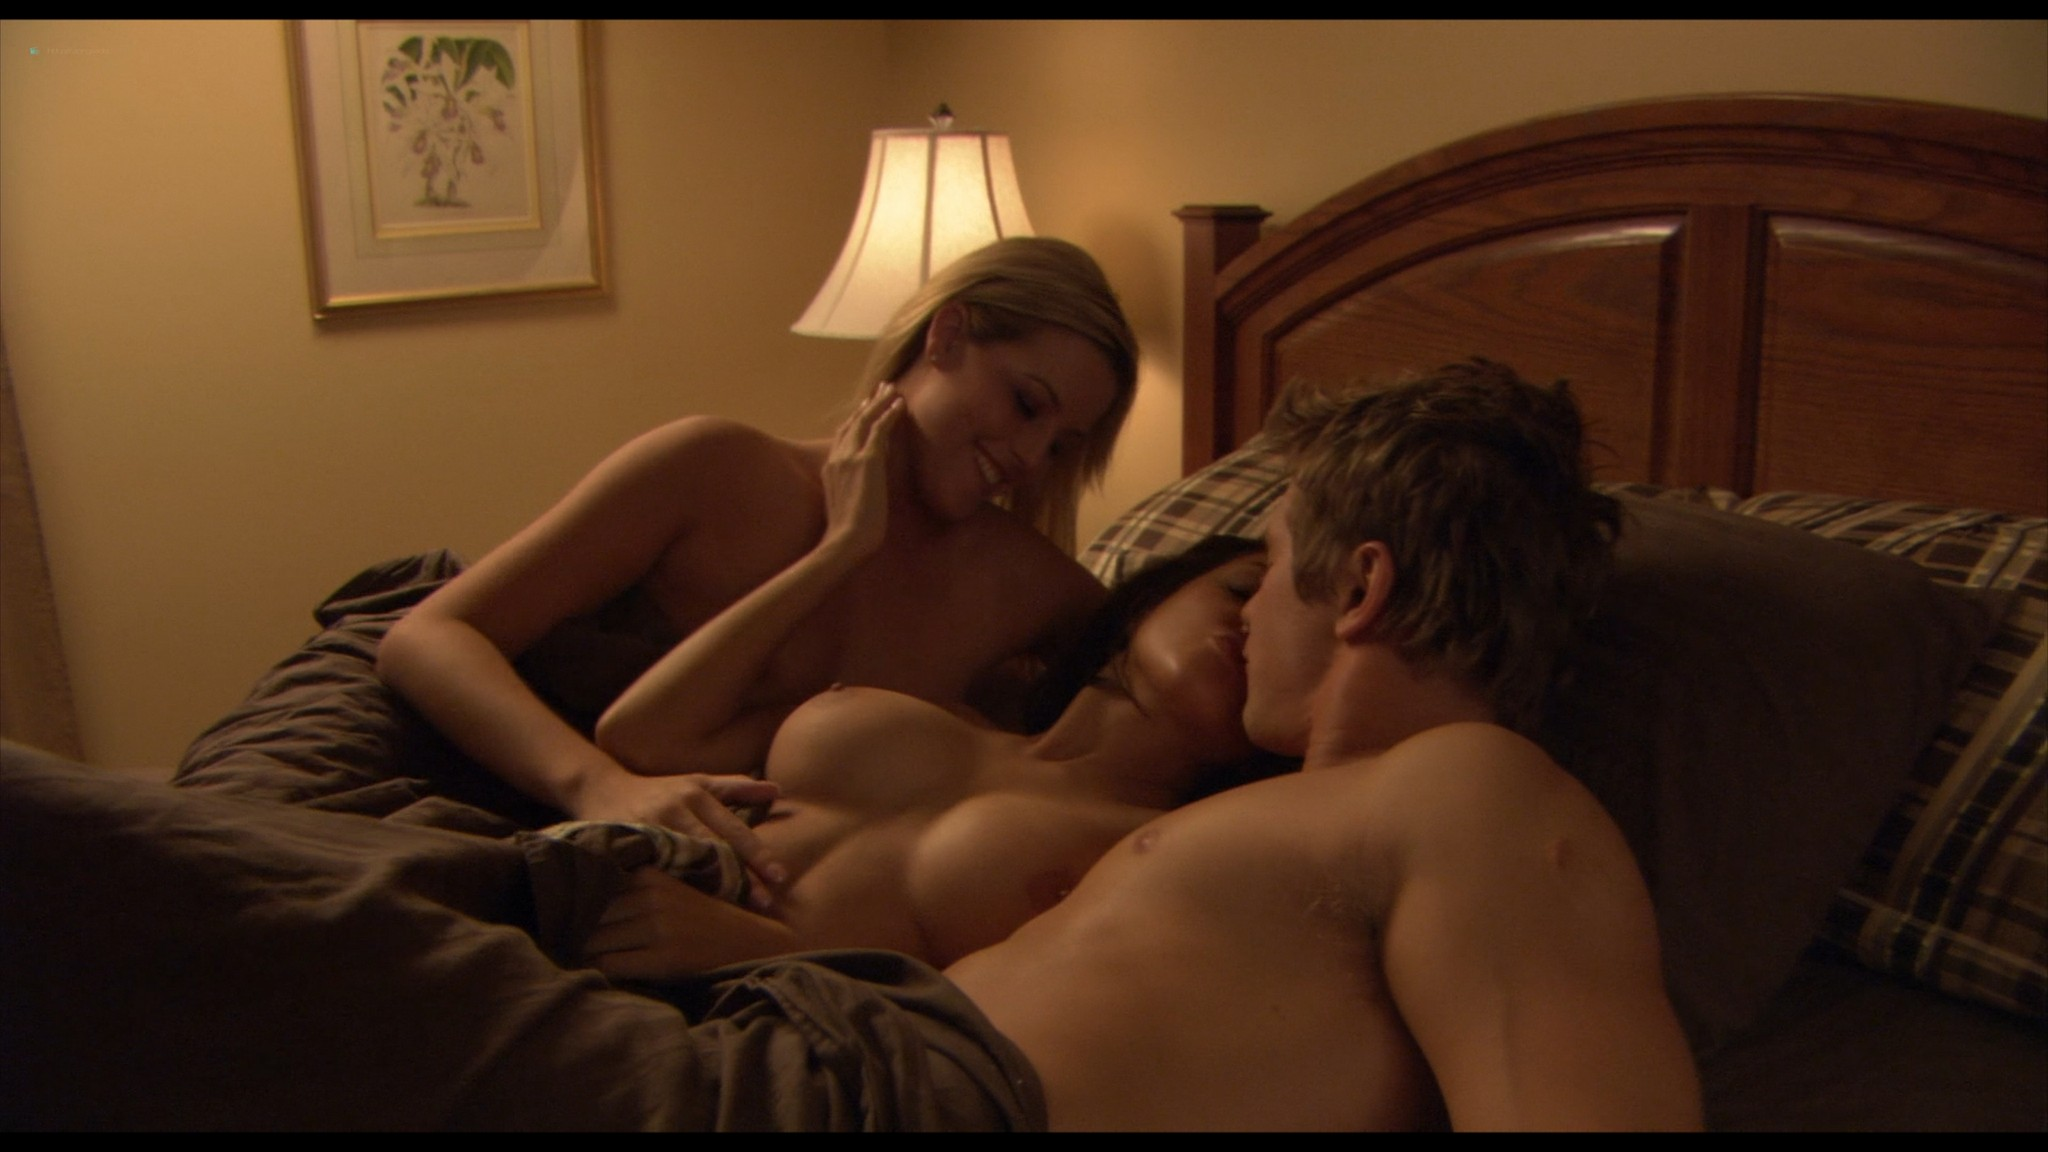 Candace Kroslak nude Michelle Cormier and others nude - American Pie Presents The Naked Mile (2006) HD 1080p BluRay (19)